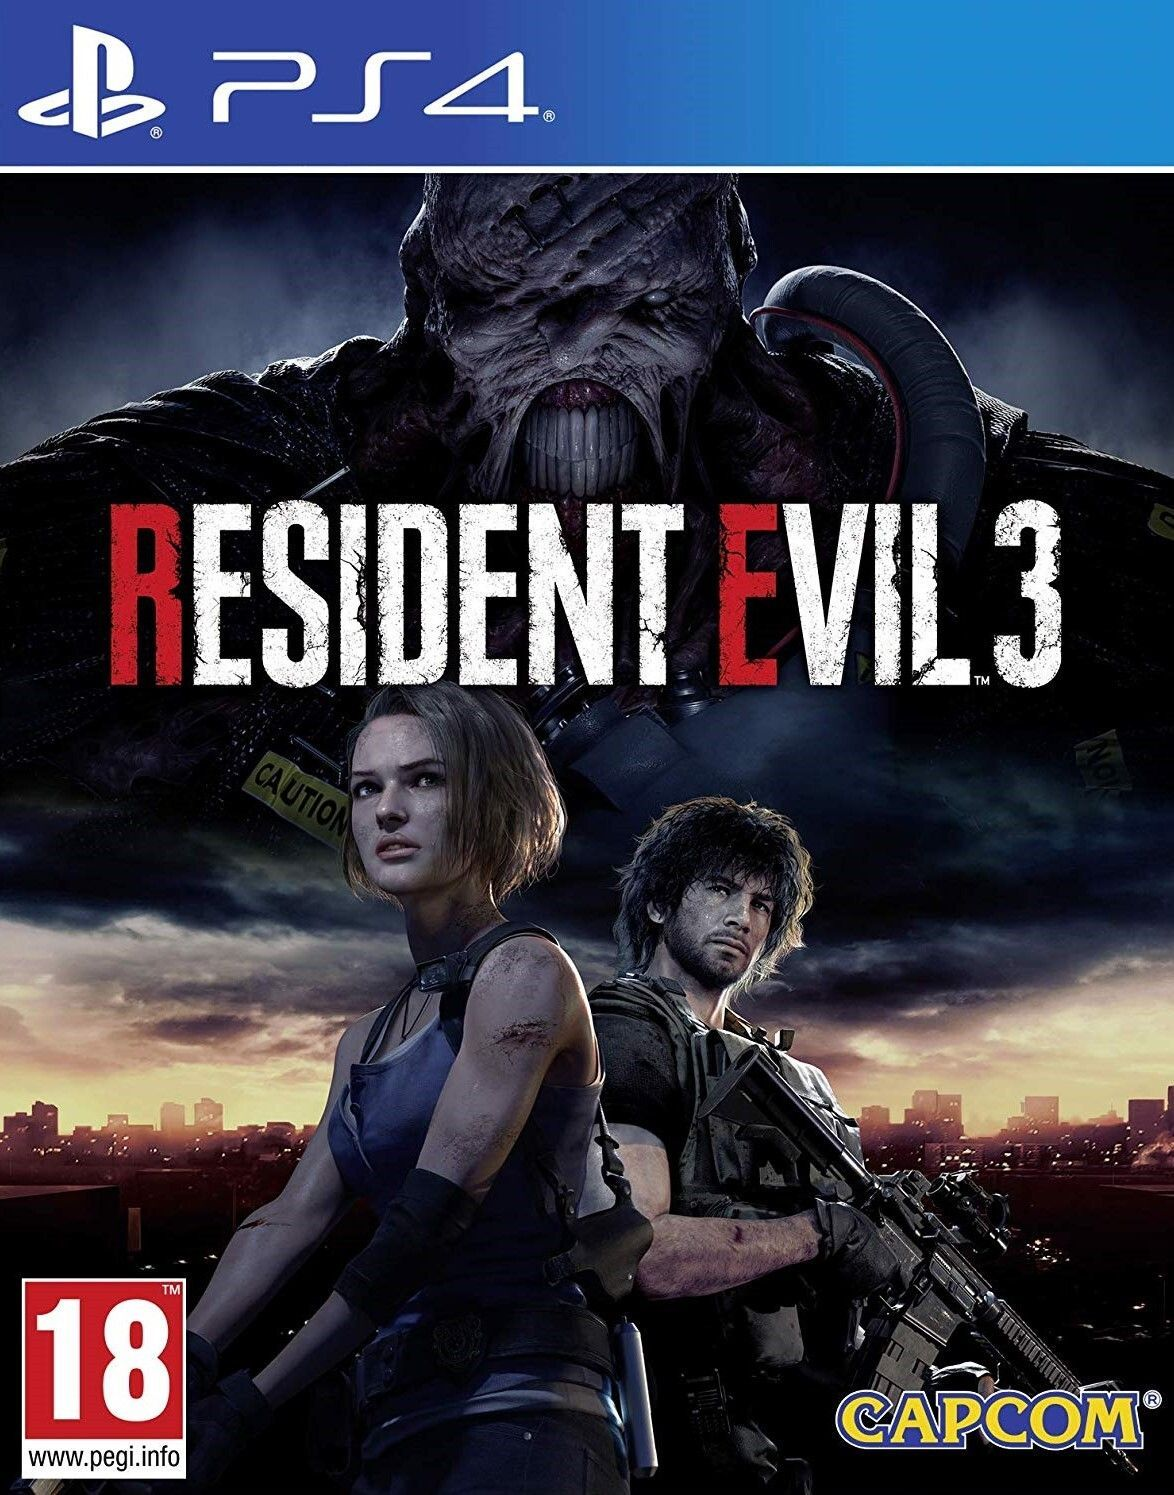 Resident Evil 3 Remake Videojuego Ps4 Pc Y Xbox One Vandal